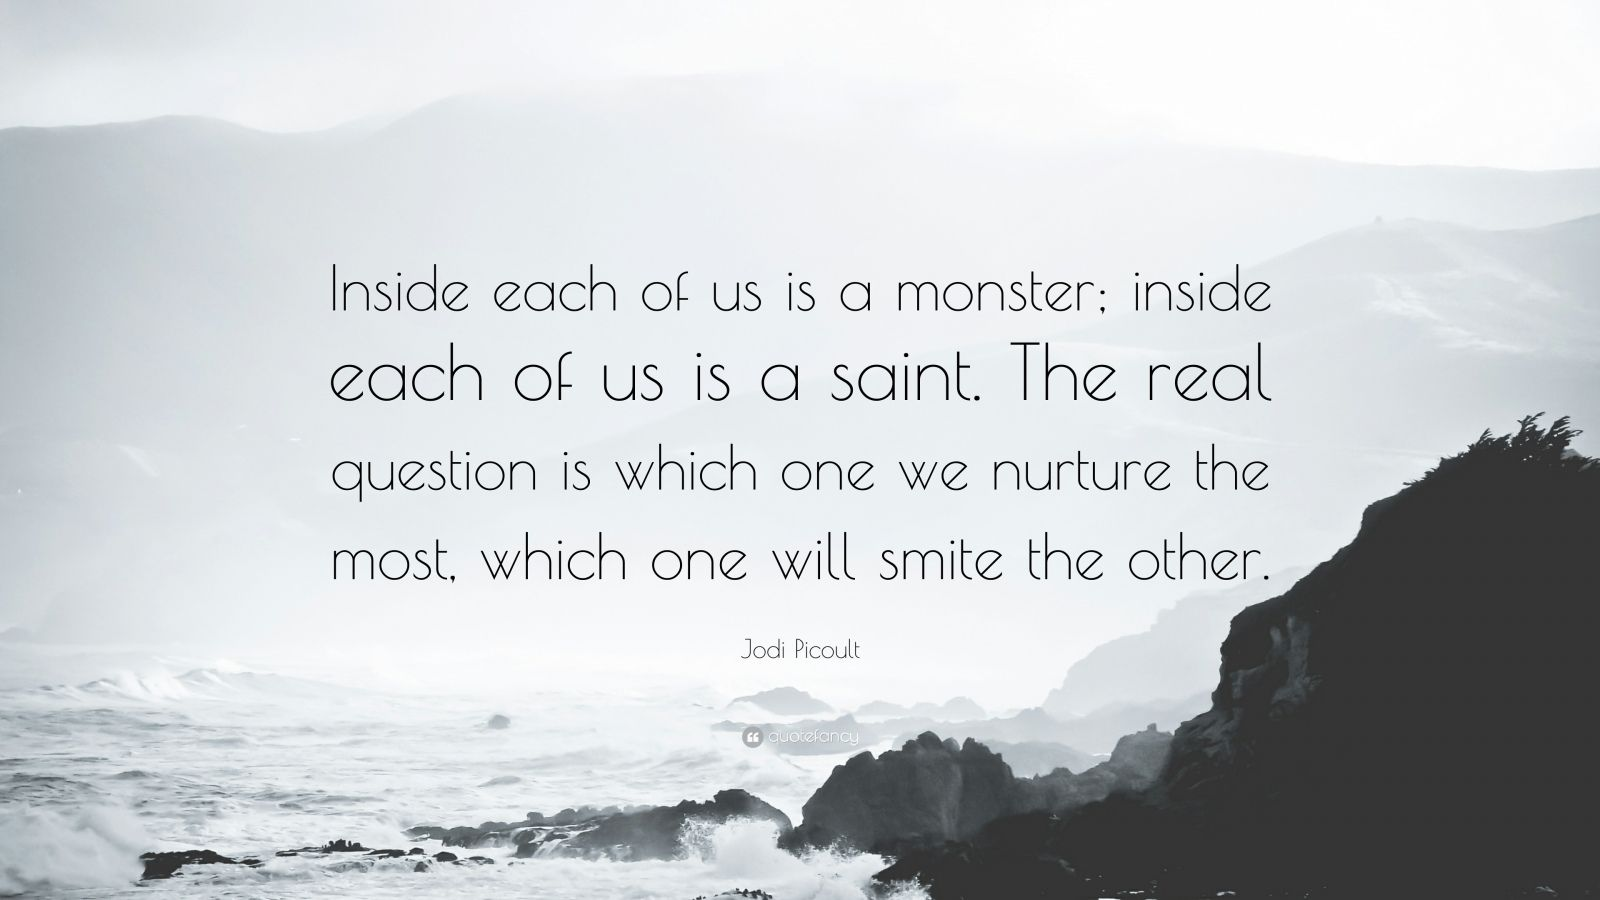 """Jodi Picoult Quote: """"Inside each of us is a monster; inside each of us is a saint. The real question is which one we nurture the most, which one will smite the other."""""""